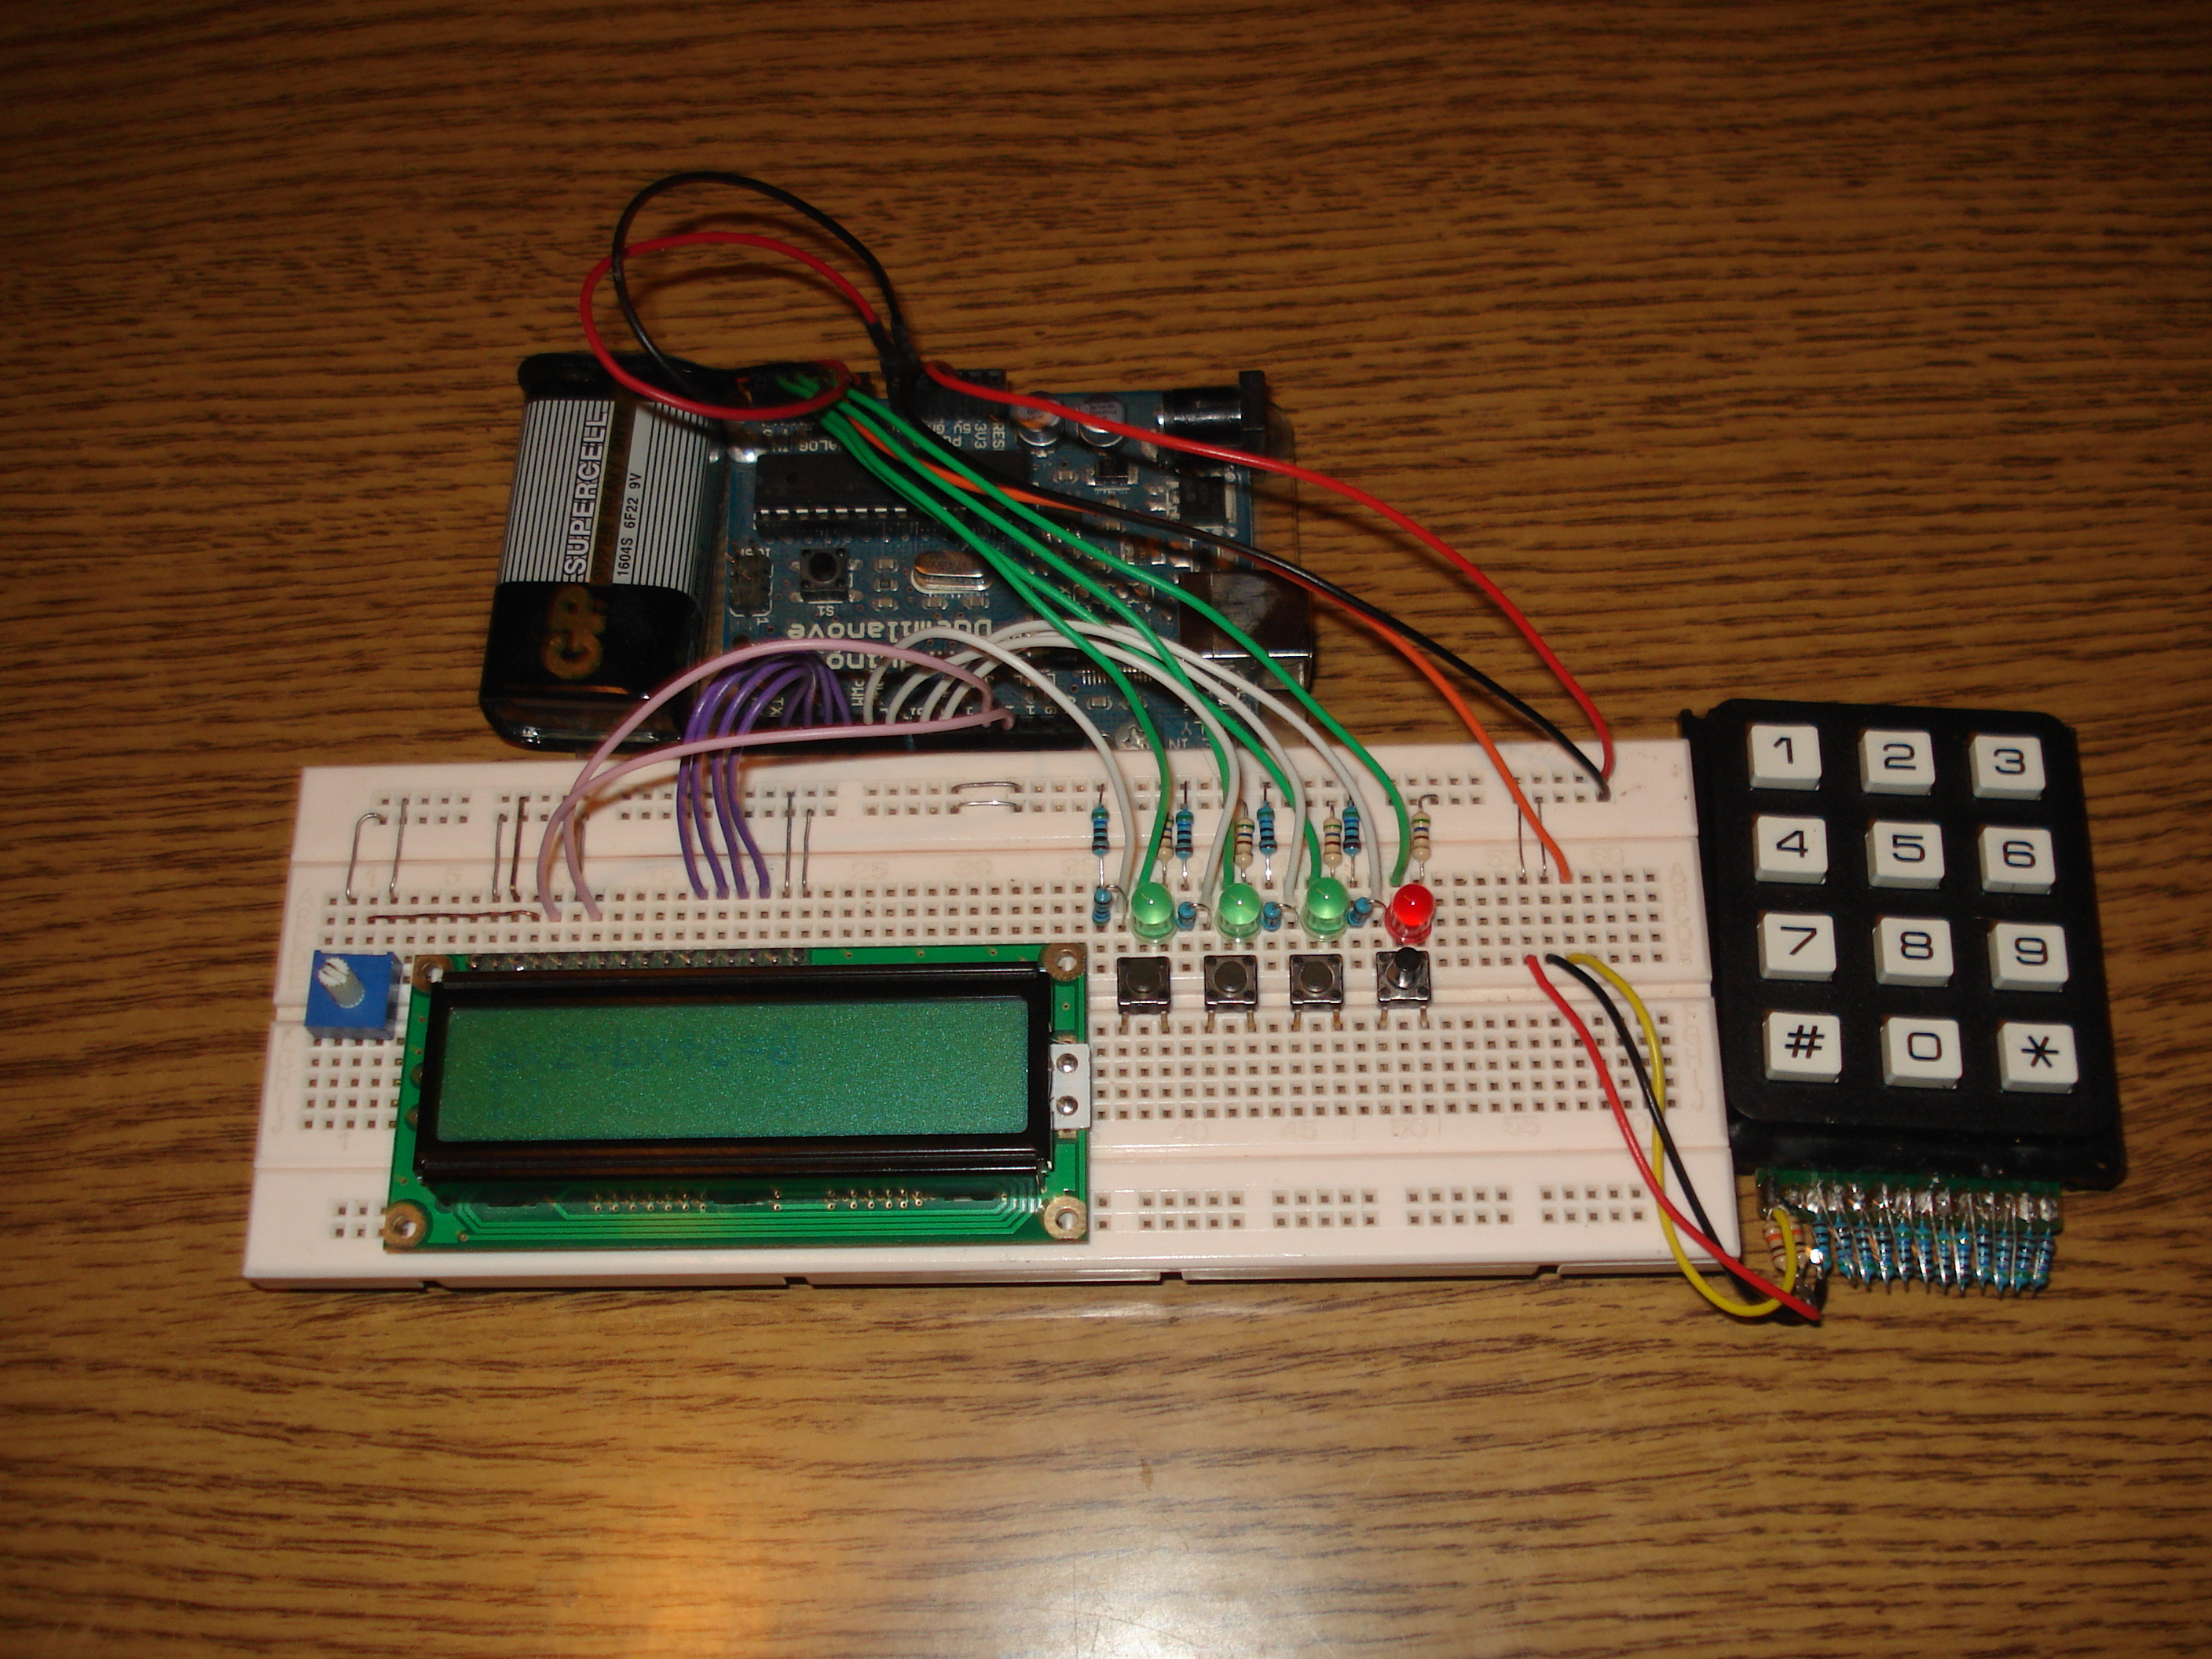 Second degree equation solver with arduino